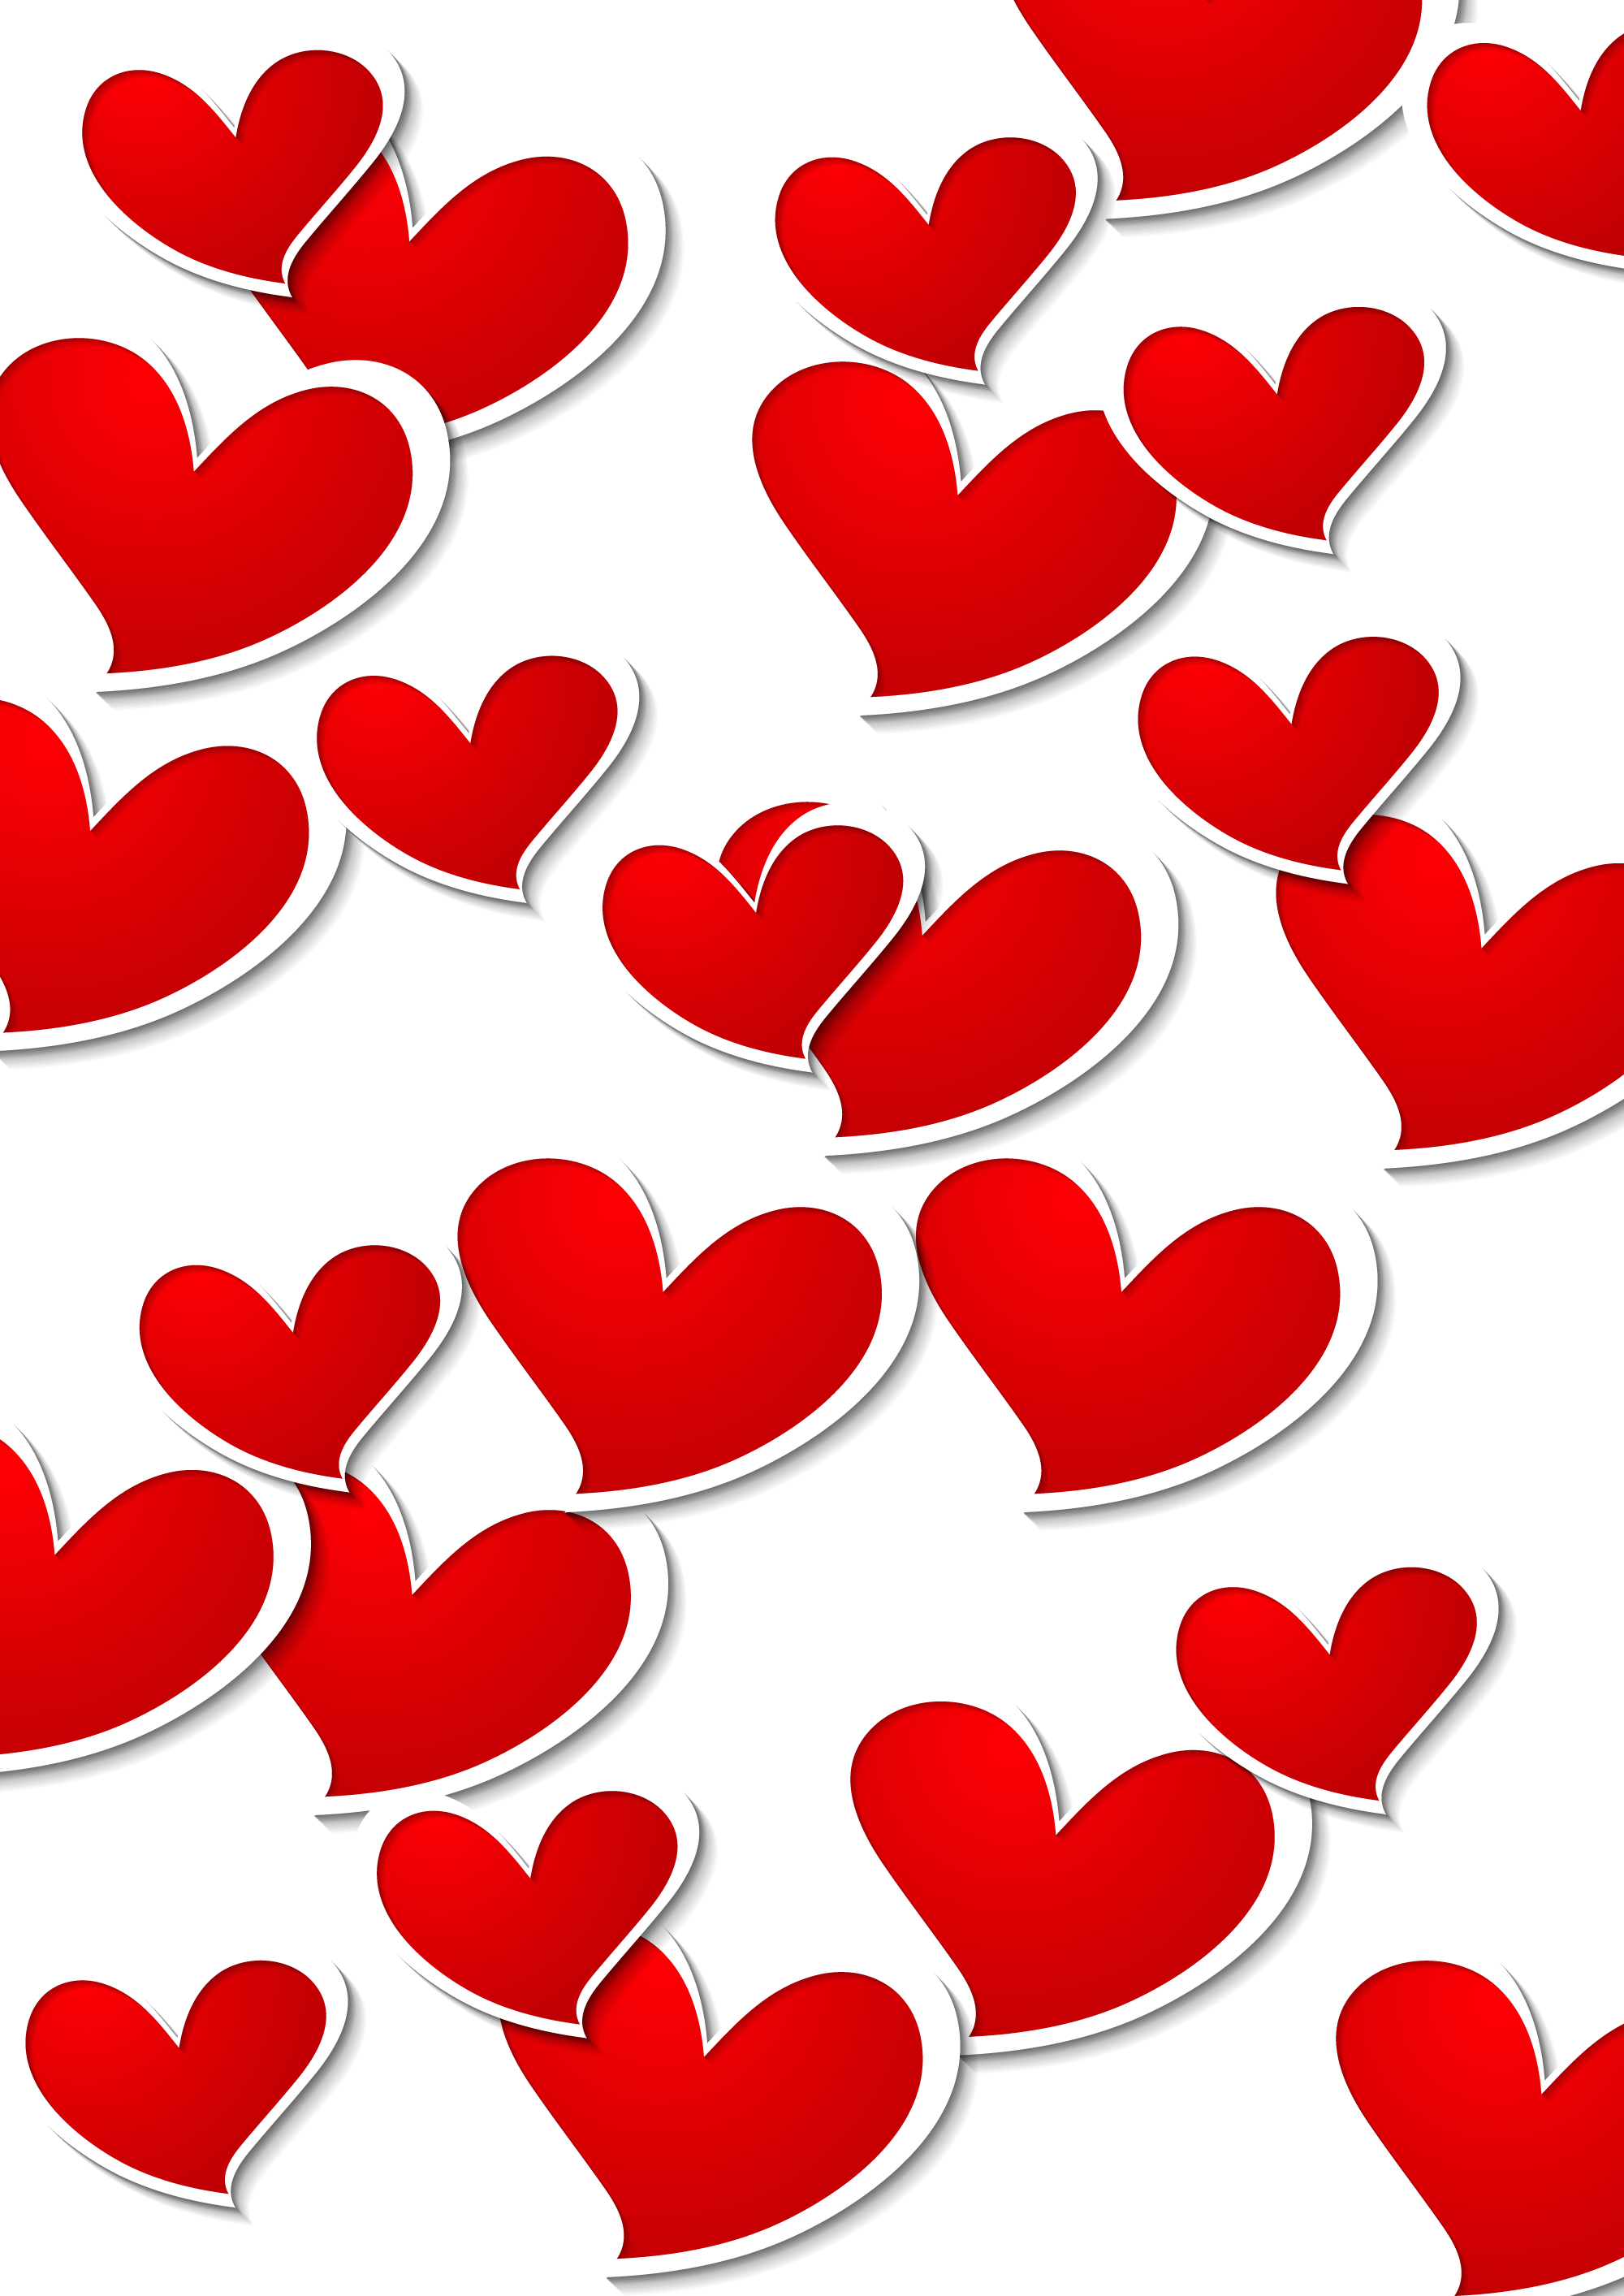 Heart stitch clipart banner transparent library Transparent Red White Hearts Decorative PNG Picture Clipar ... banner transparent library